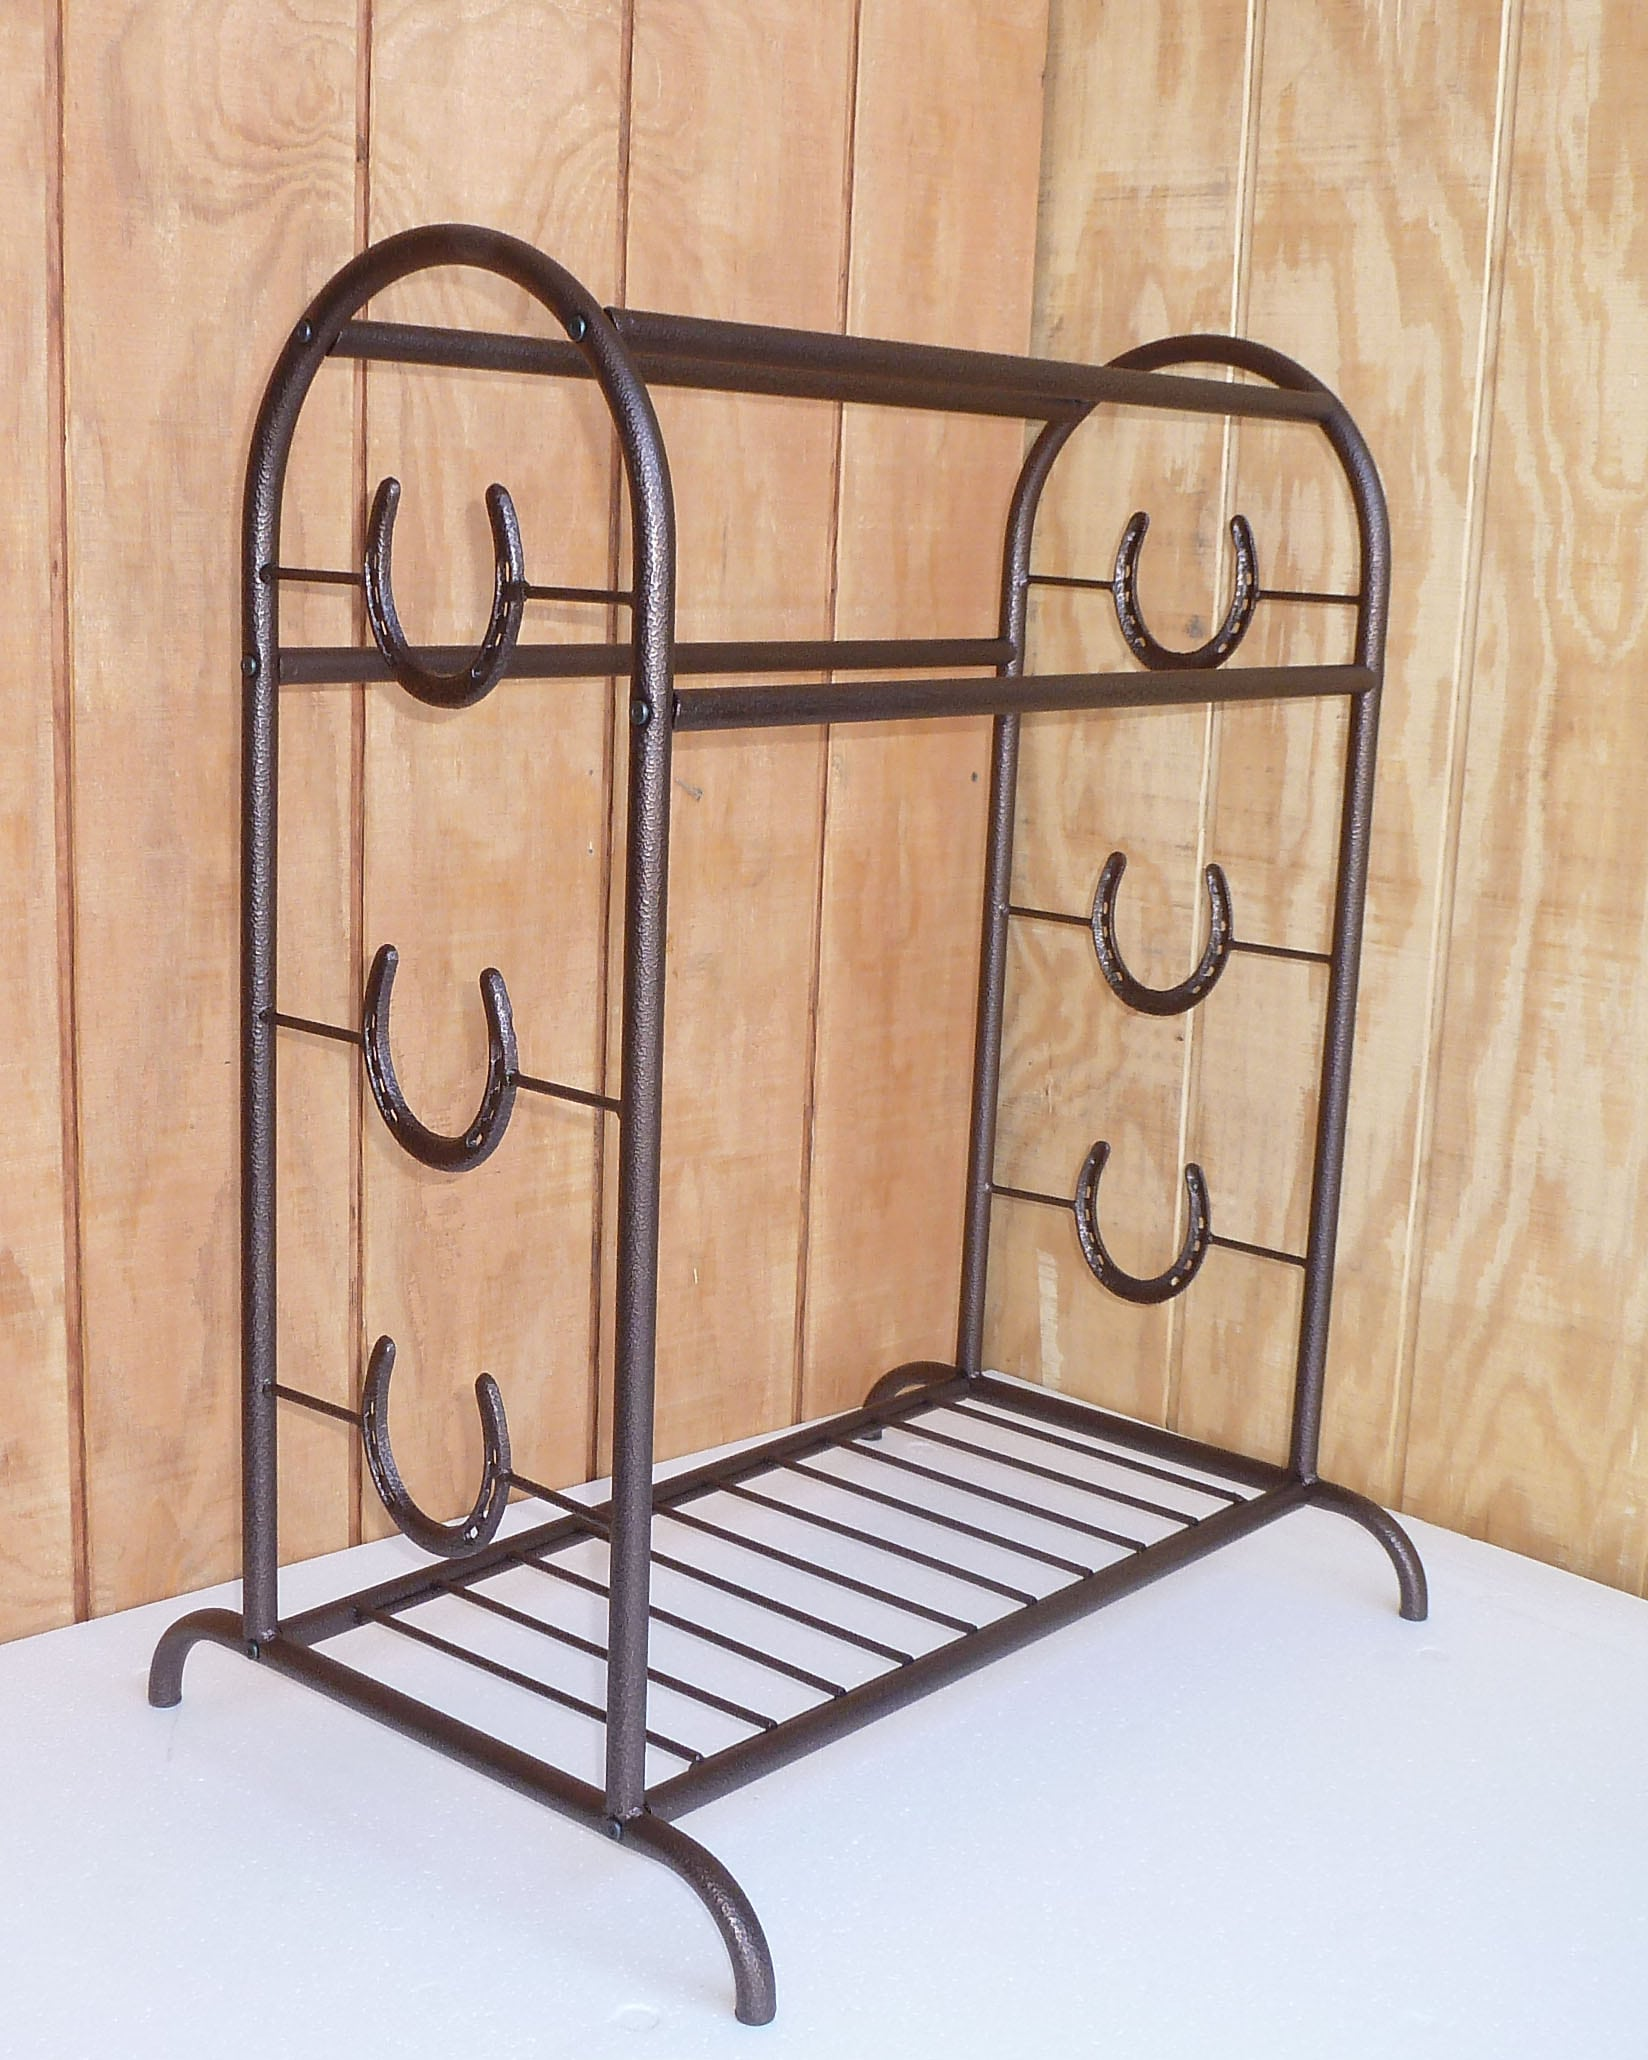 ranch stand make mrssaddlerack mounted designs how saddle to a wooden supply wall rack martin